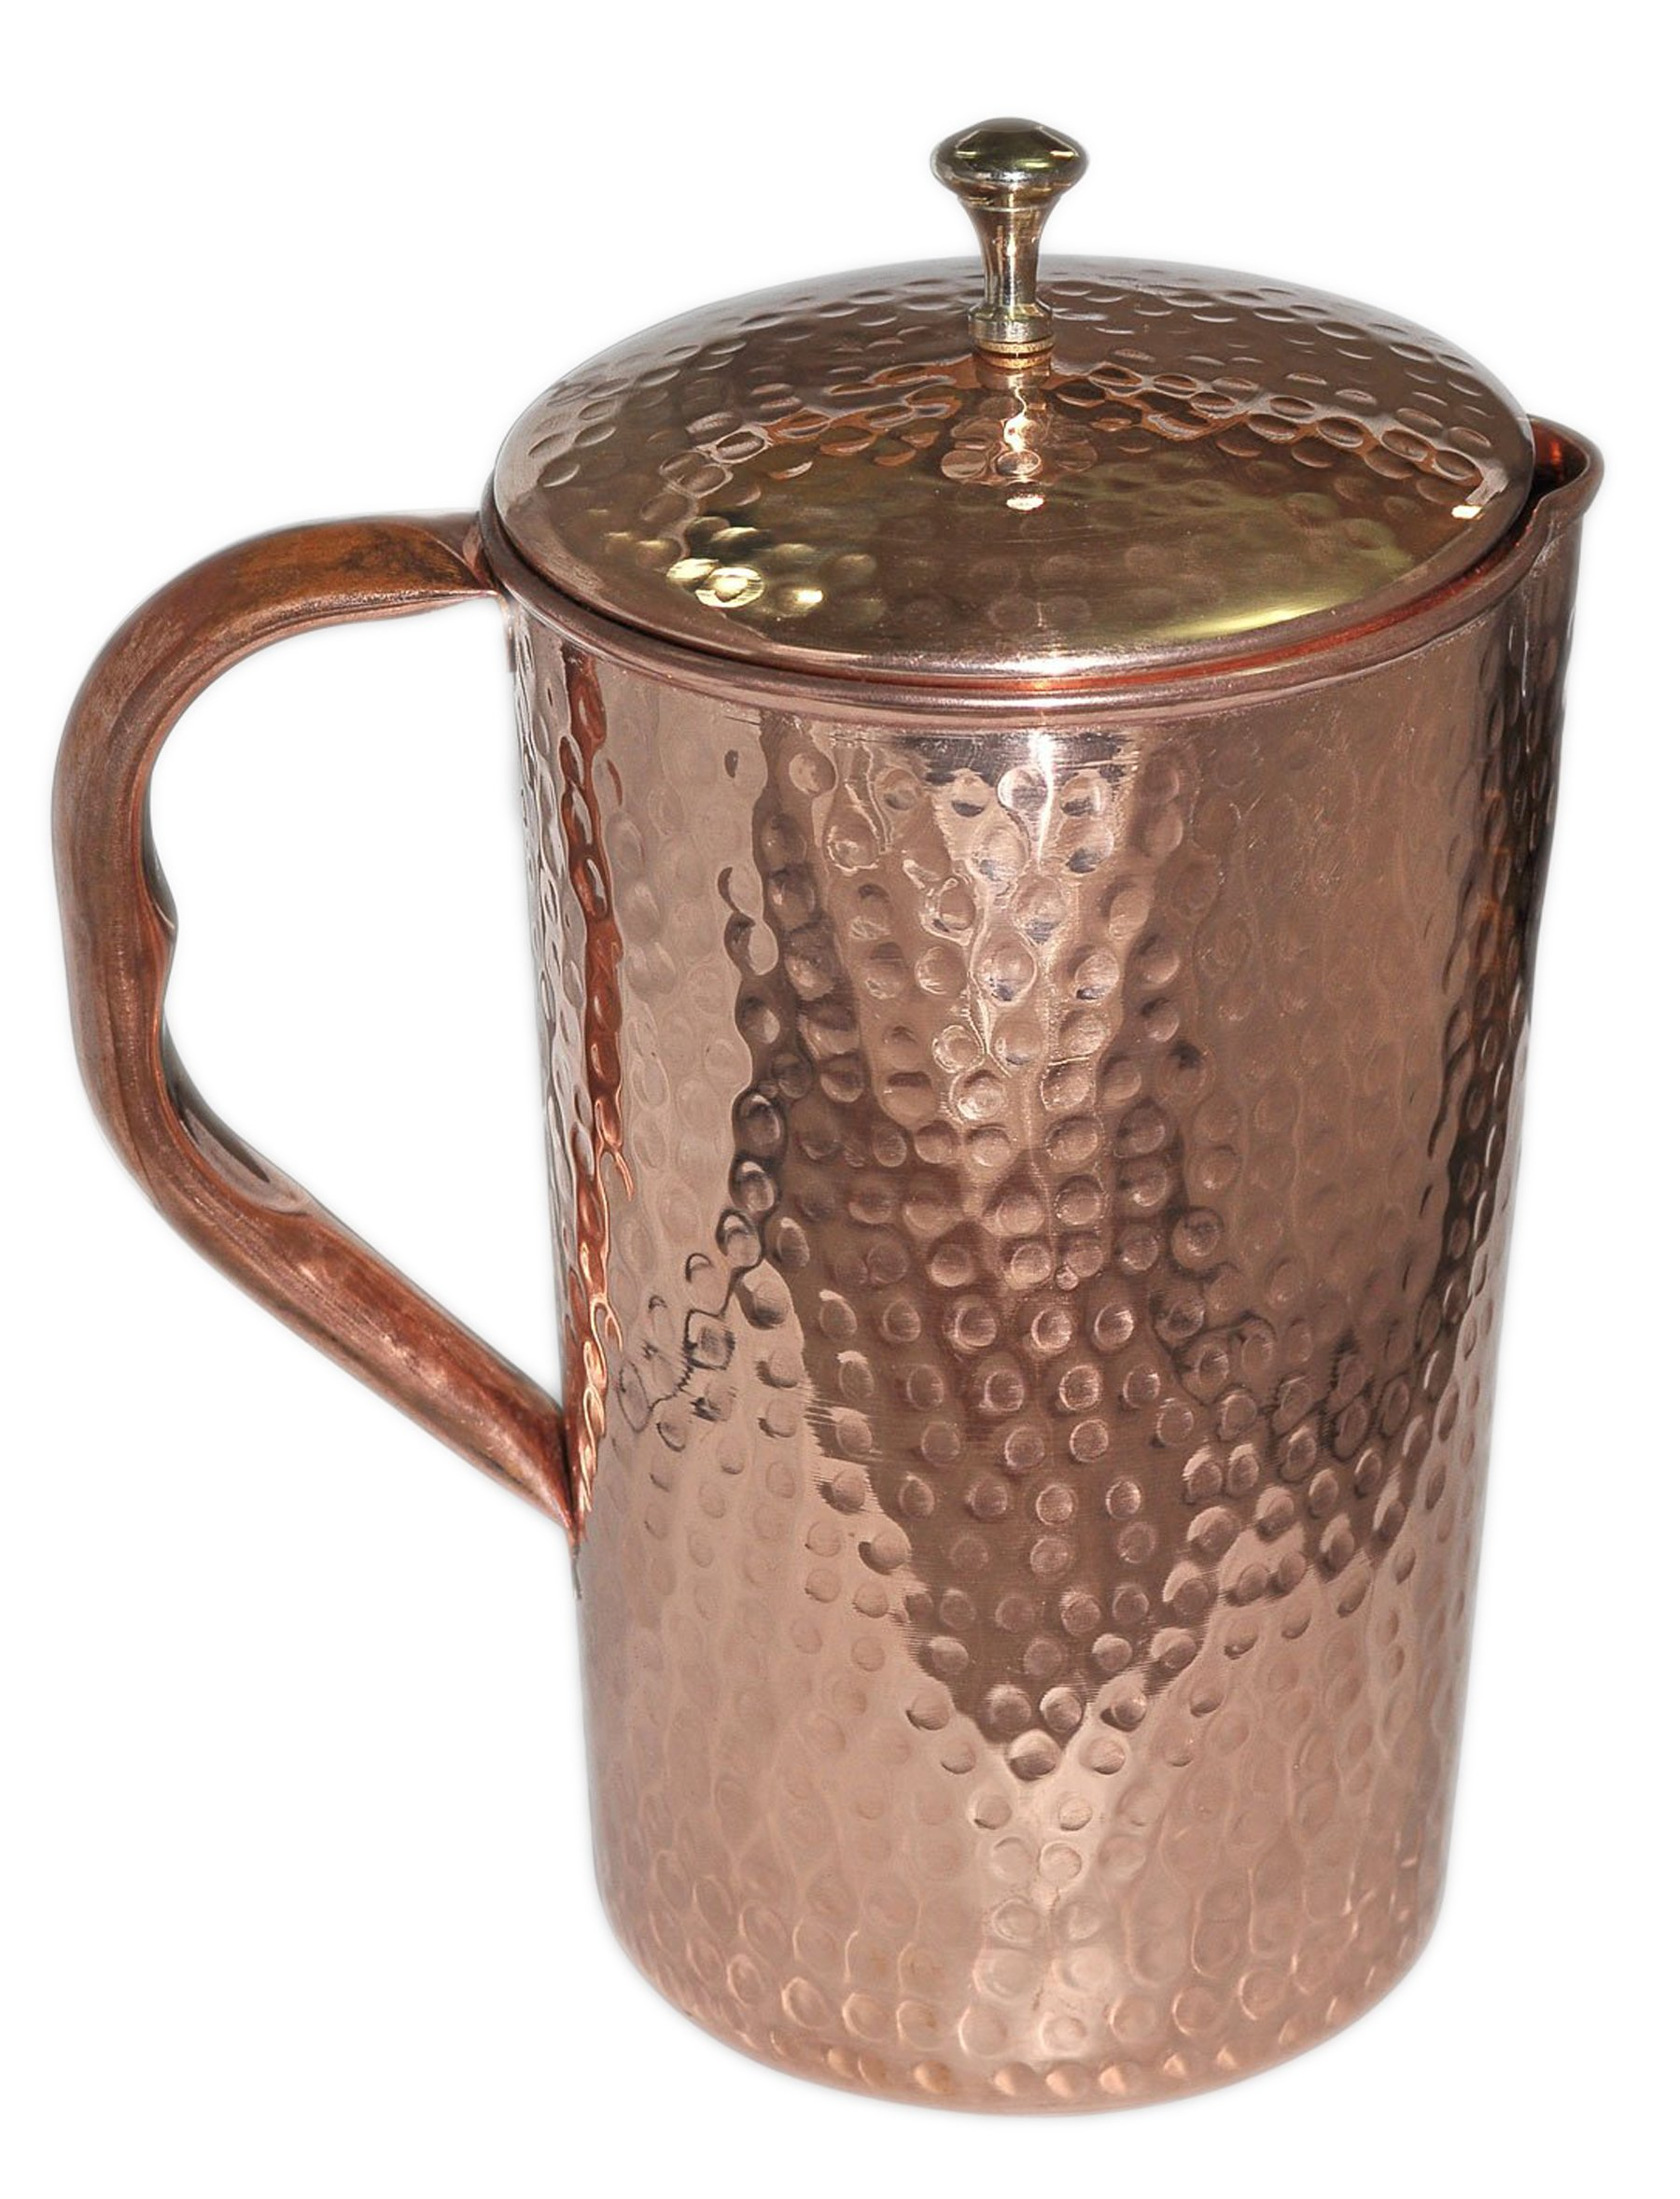 Pure Copper Hammered Water Jug Copper Pitcher for Ayurveda Health Benefit Hammered Finished by Parijat Handicraft (Image #2)